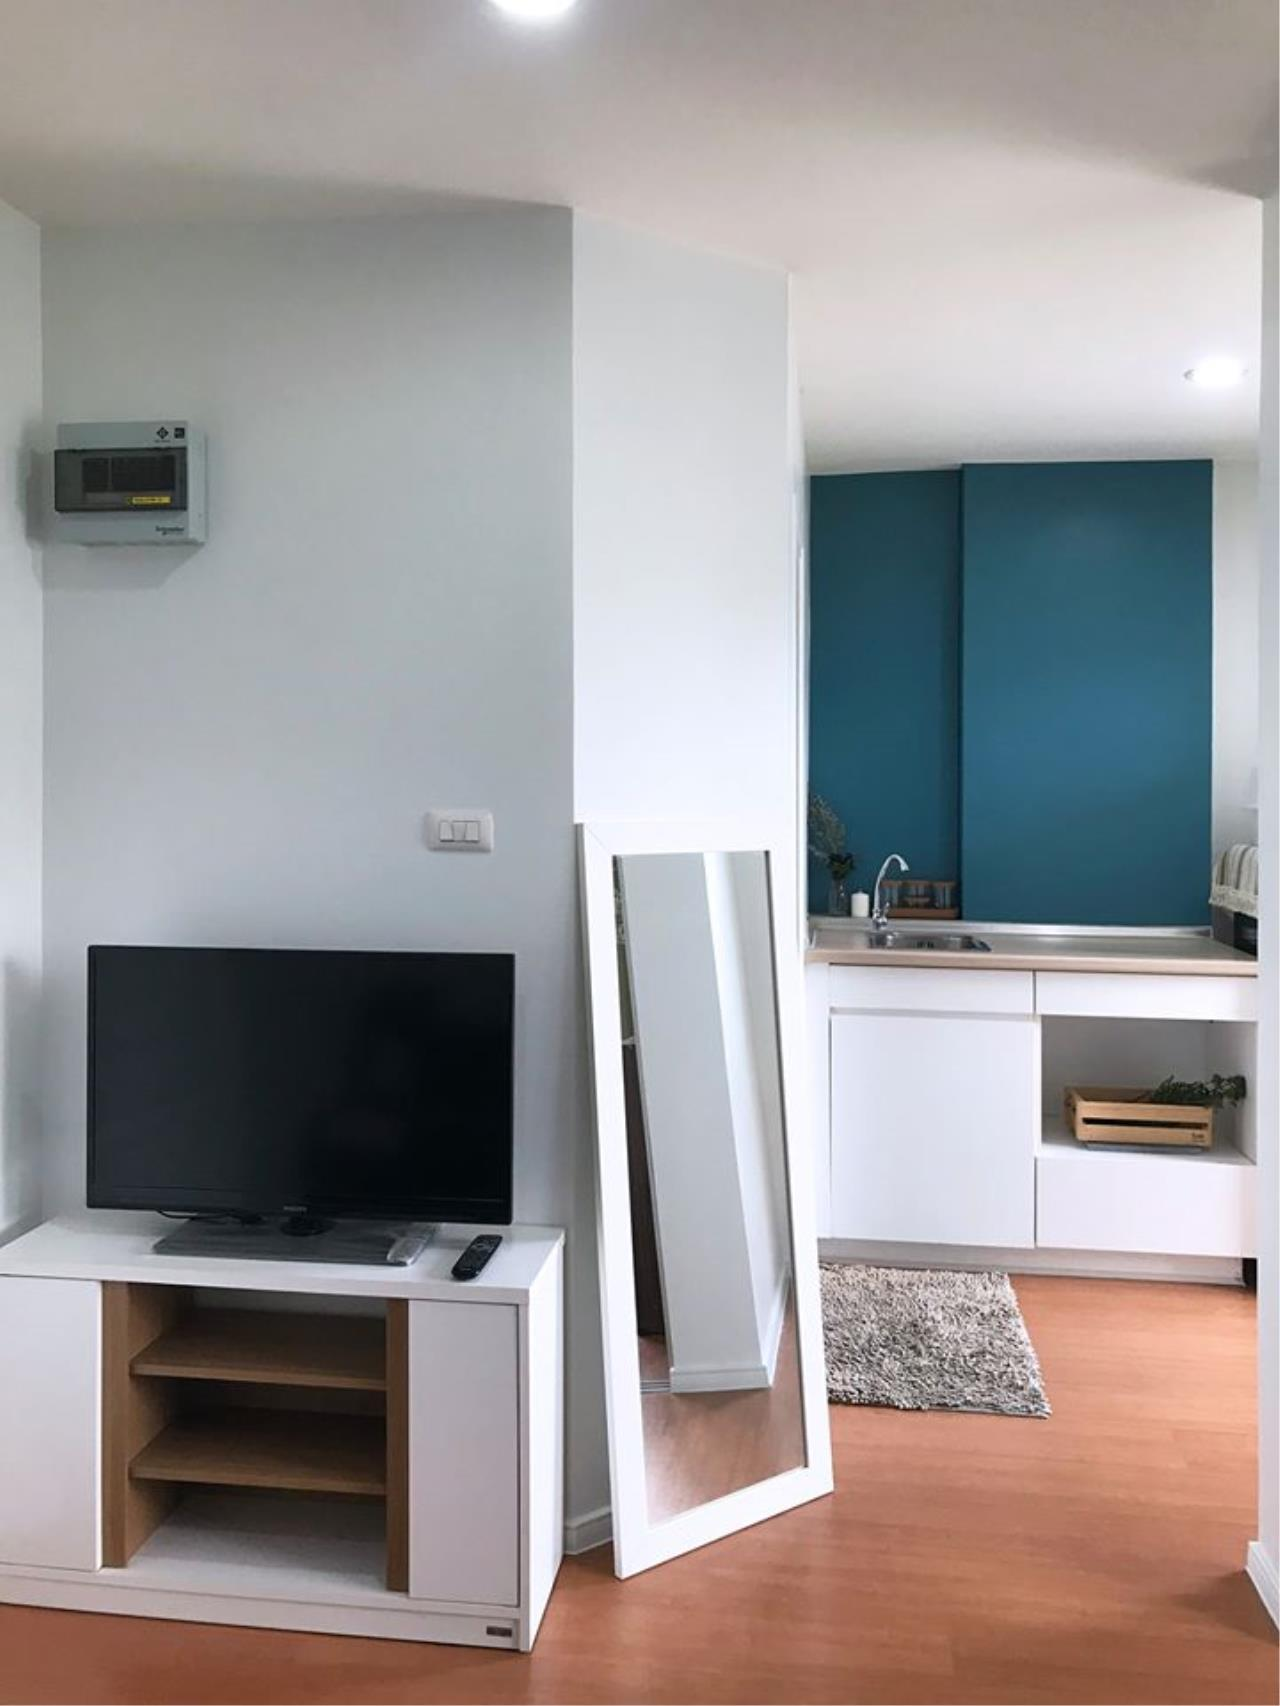 Agent Thawanrat Agency's Condo for rental LUMPINI CONDOTOWN NIDA – SEREETHAI 1 bedroom,1 bathroom. size 23 sqm.Floor 32 th. fully furnished Ready to move in 4